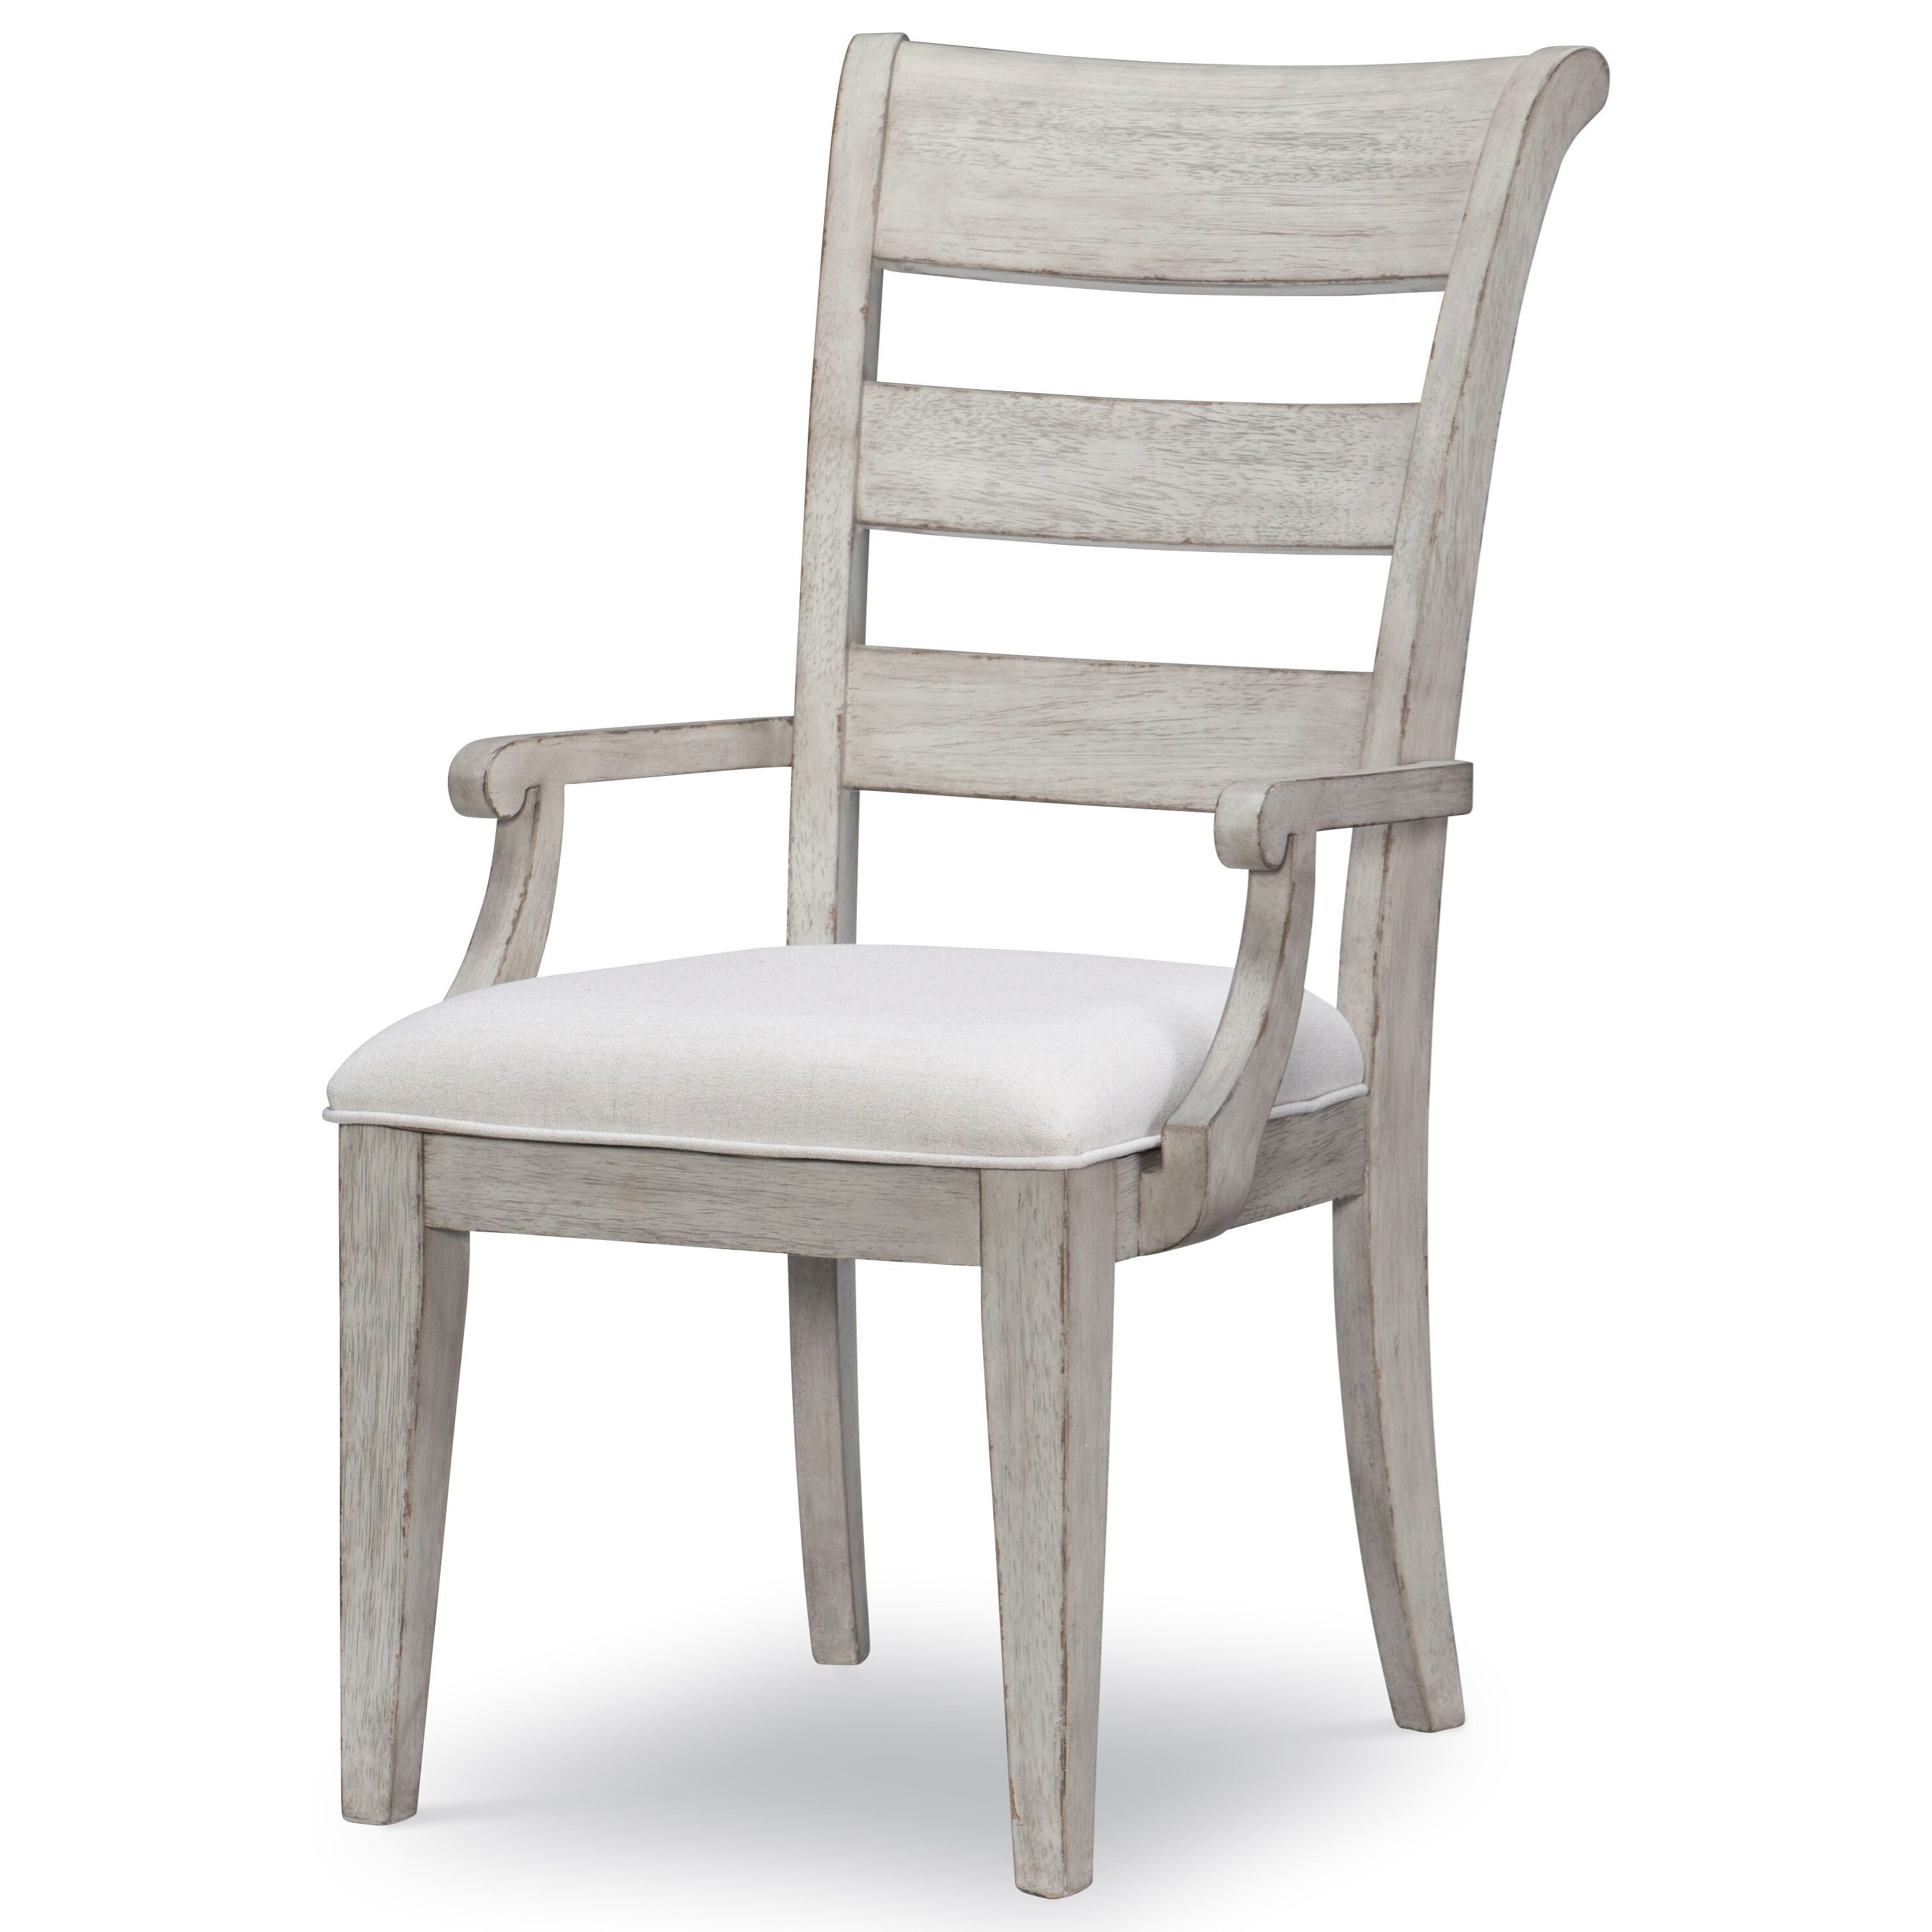 Belhaven Ladder Back Arm Chair by Legacy Classic at Stoney Creek Furniture